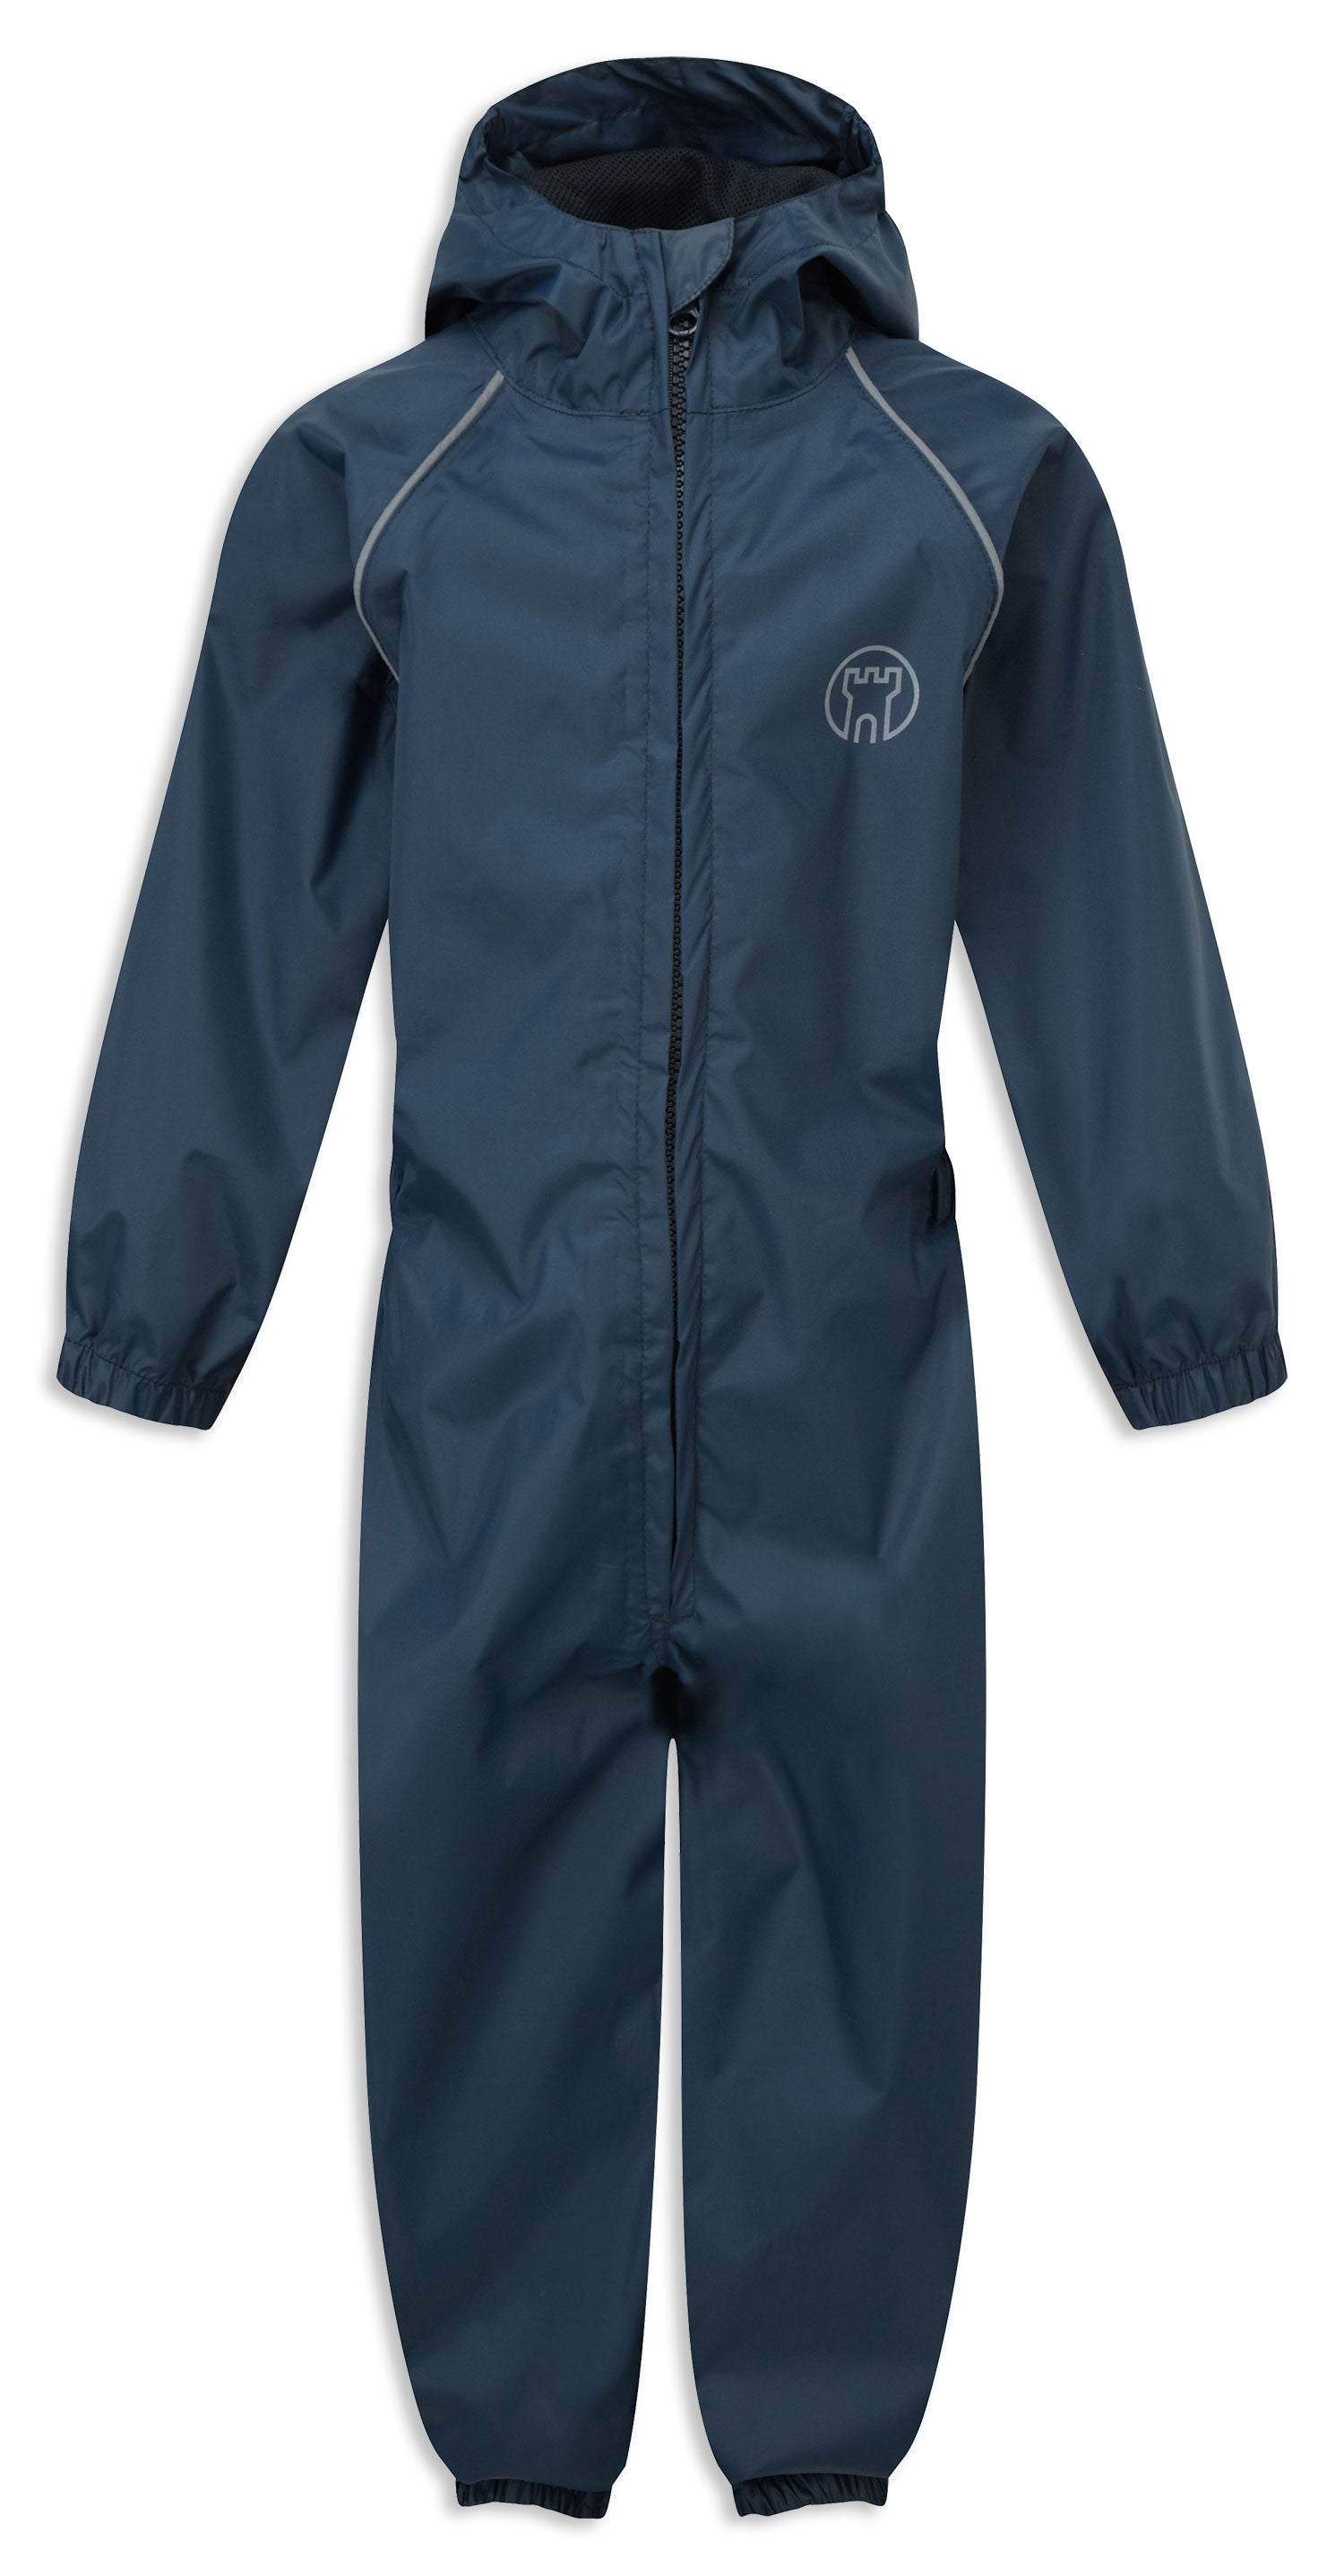 Navy Castle Fort Child's Splashaway Rainsuit